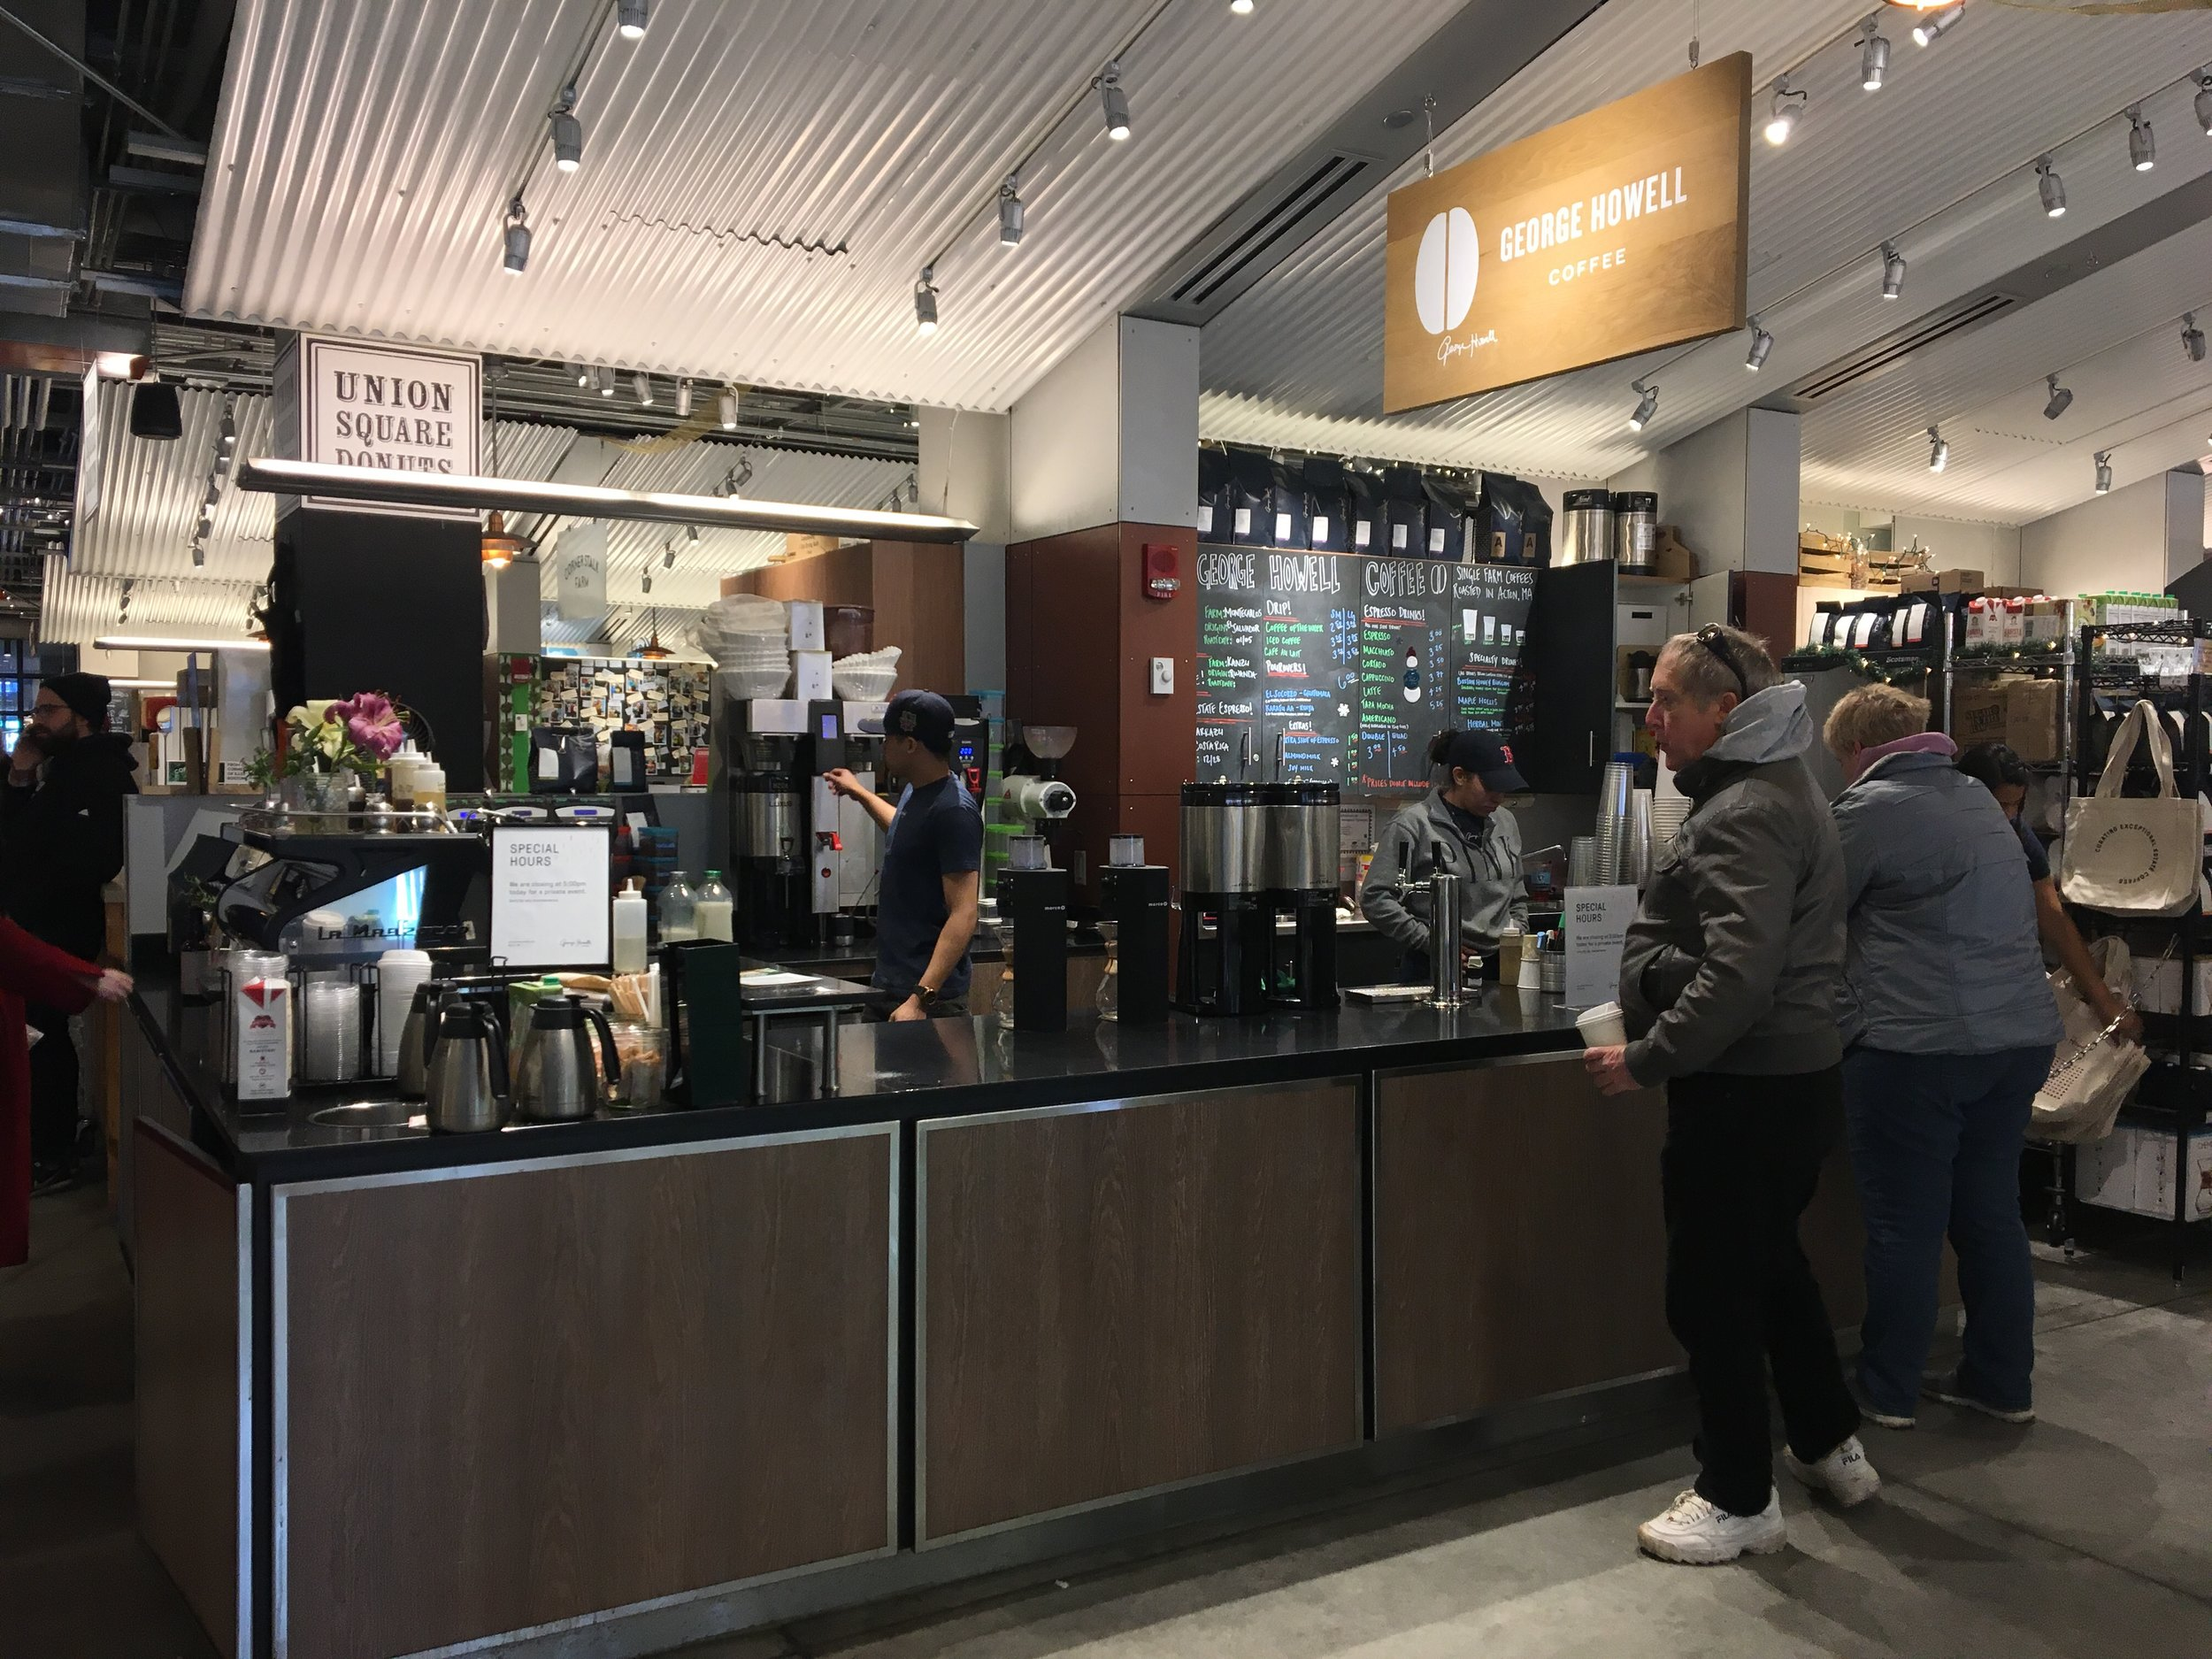 The George Howell Cafe at The Boston Public Market